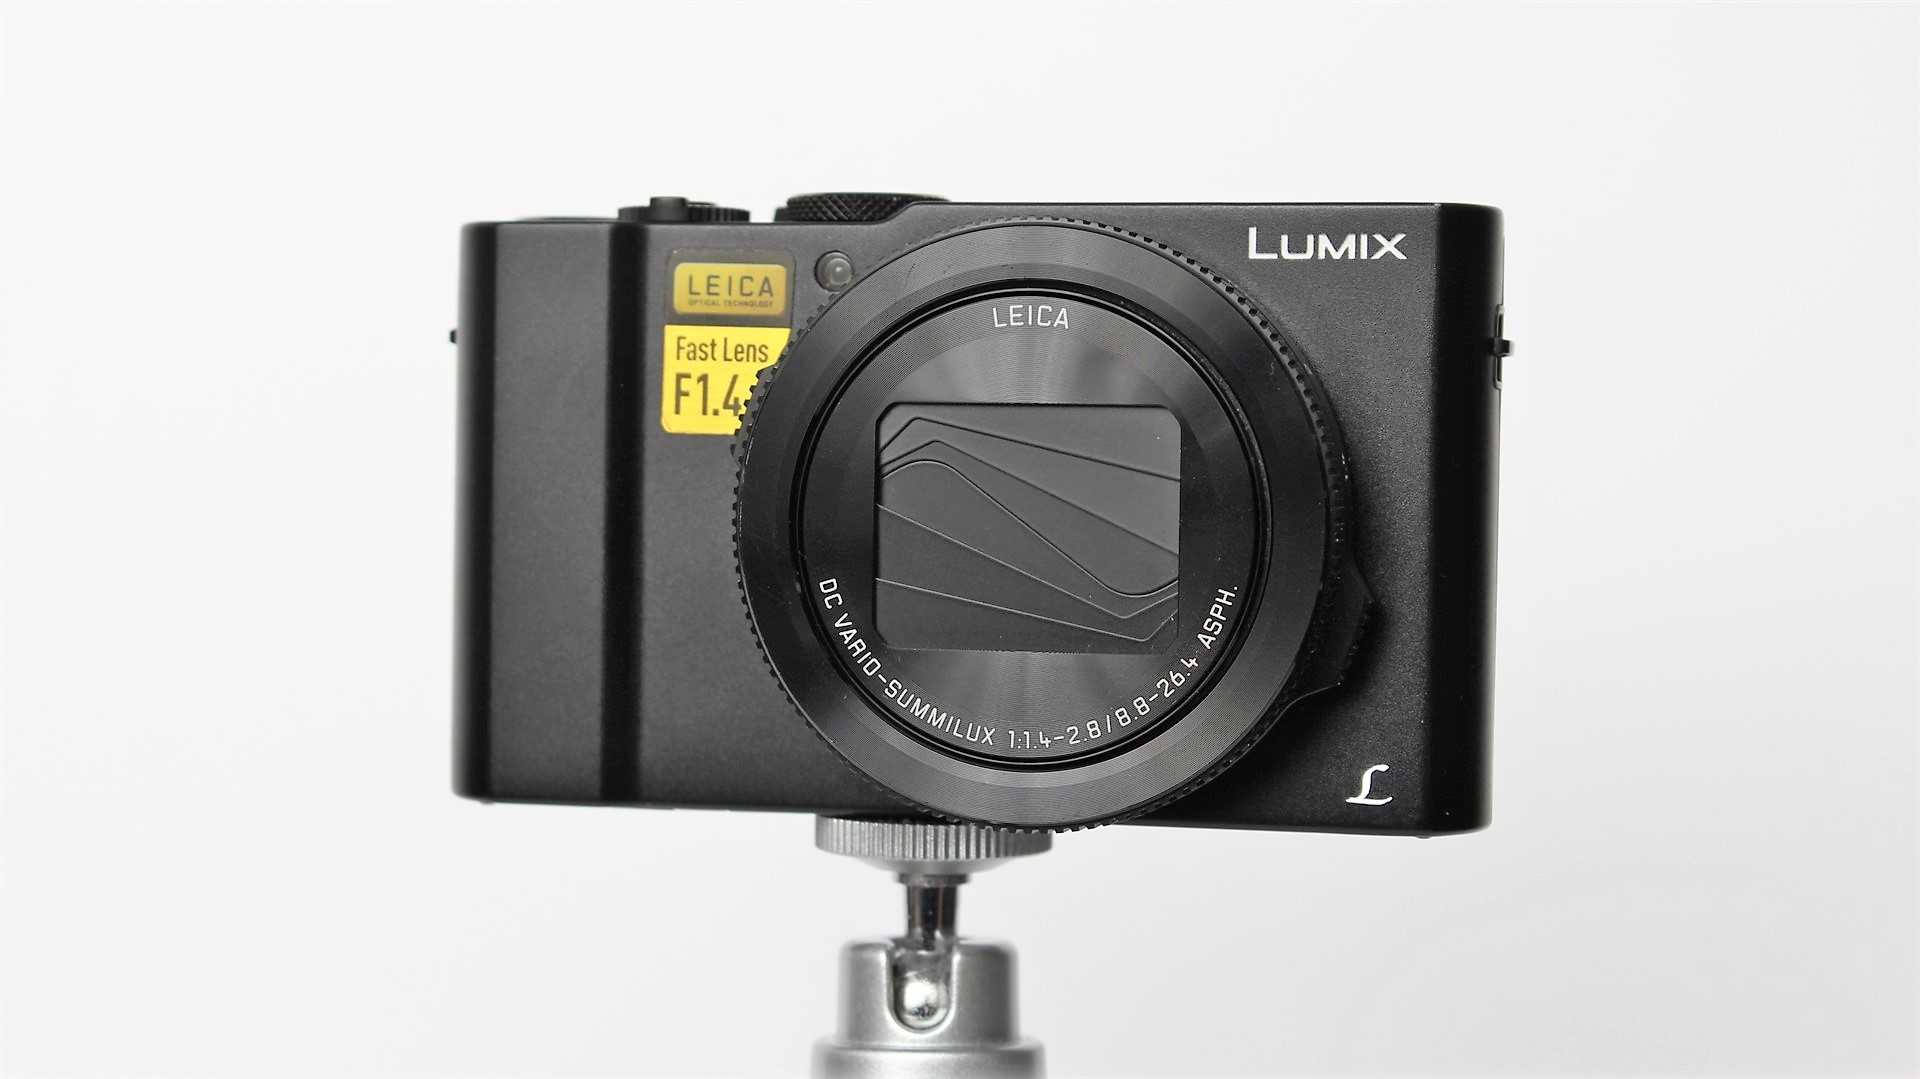 lumix camera hi tech - photo #33